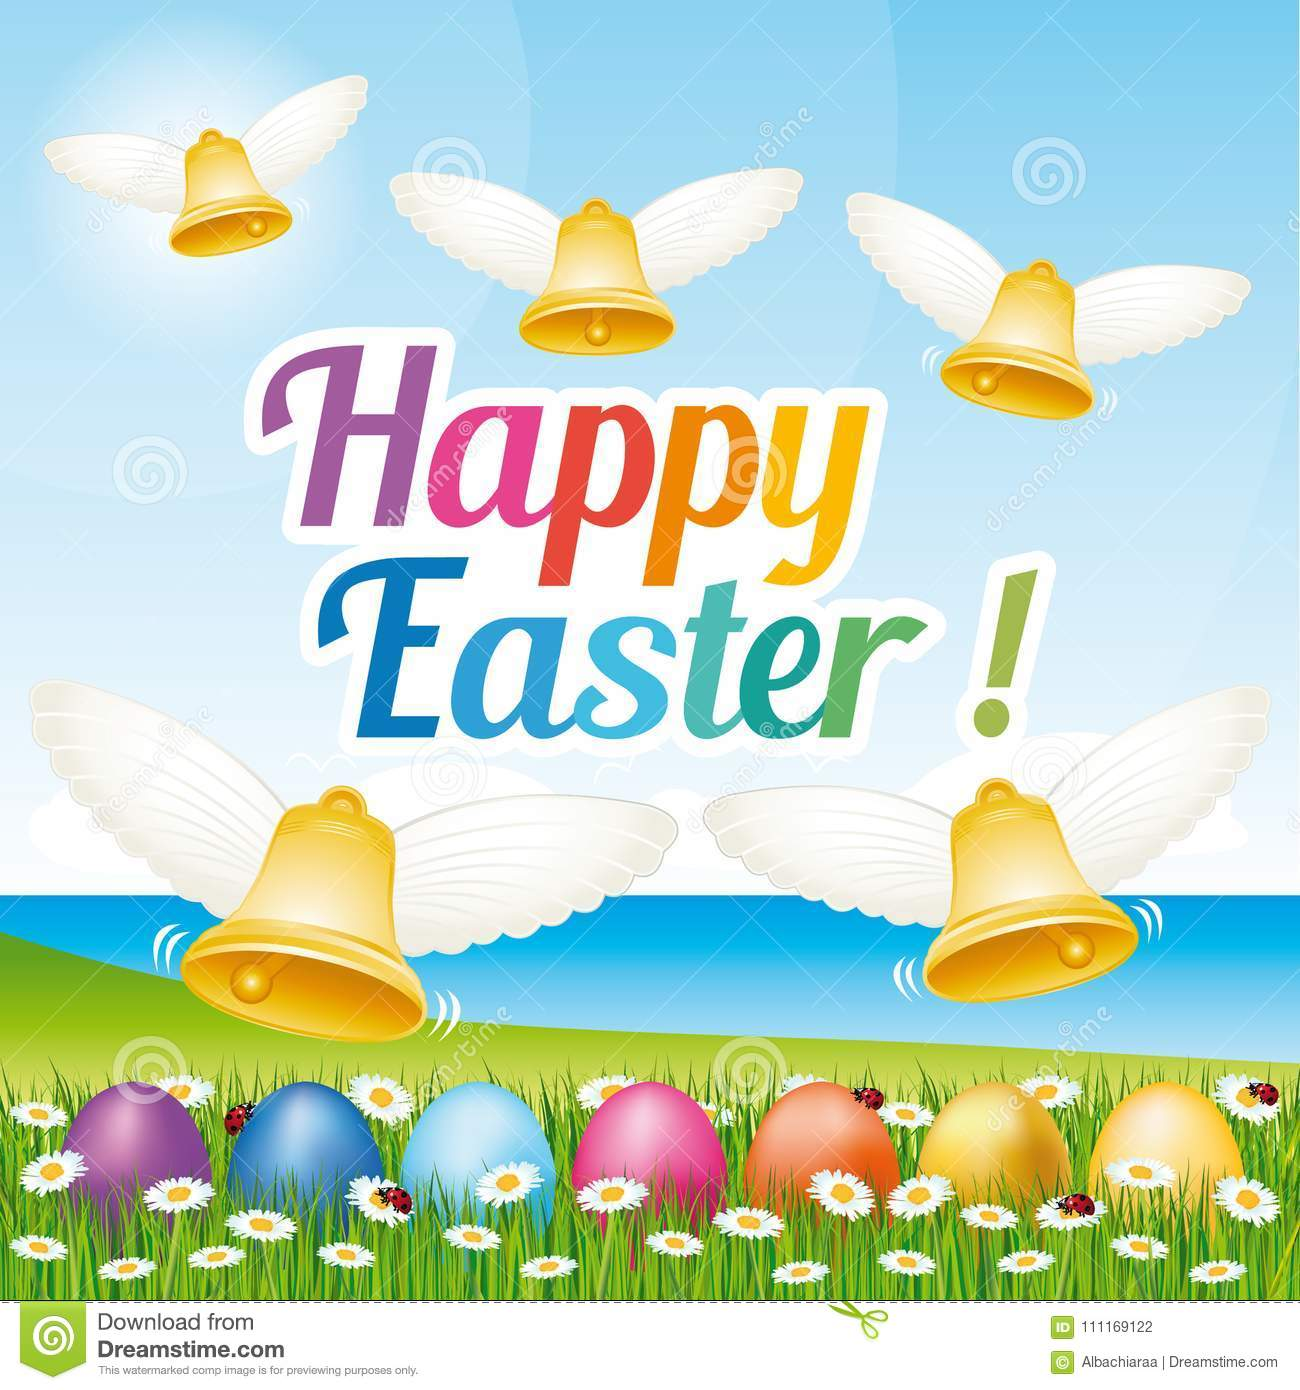 Beautiful and colorful Happy Easter greeting card with easter eggs and bells. Illustration III.